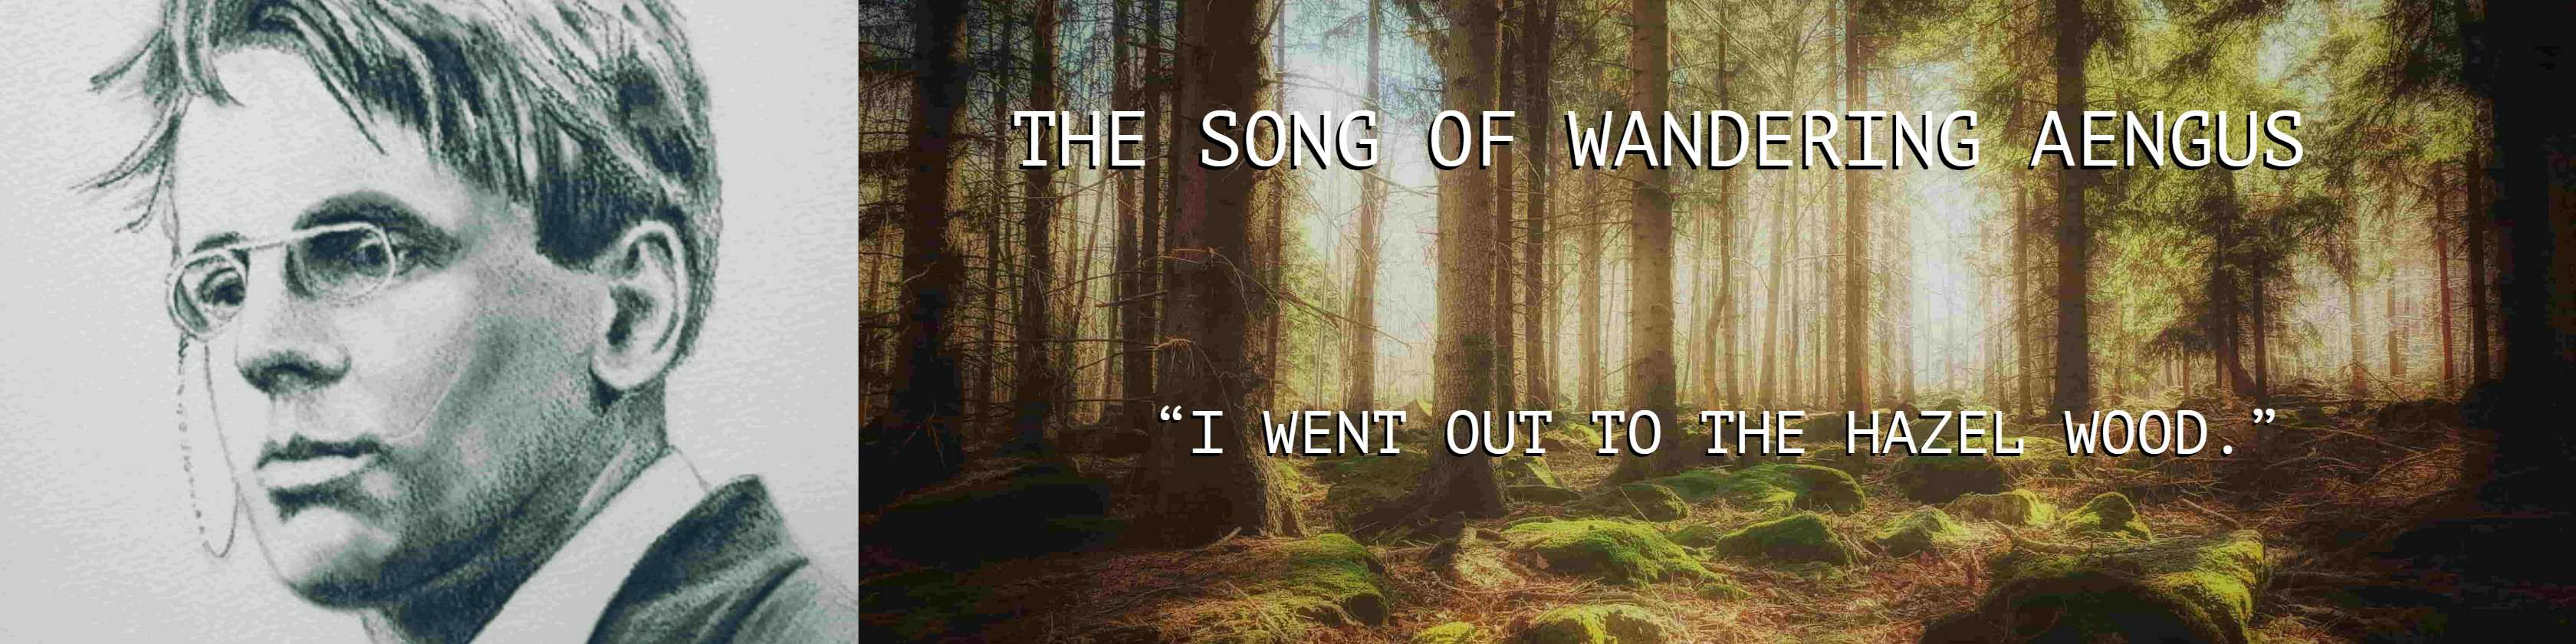 song of wandering aengus i went out to the hazel wook